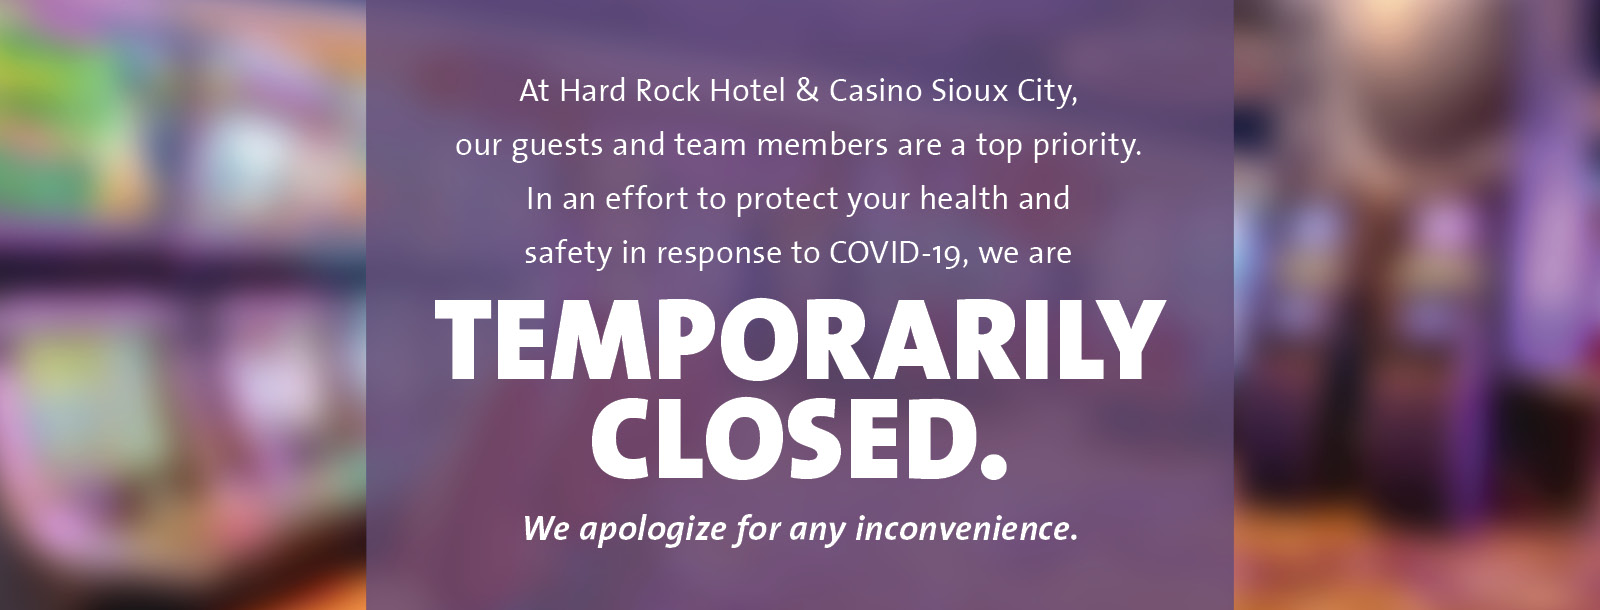 hard rock sioux city temporarily closed